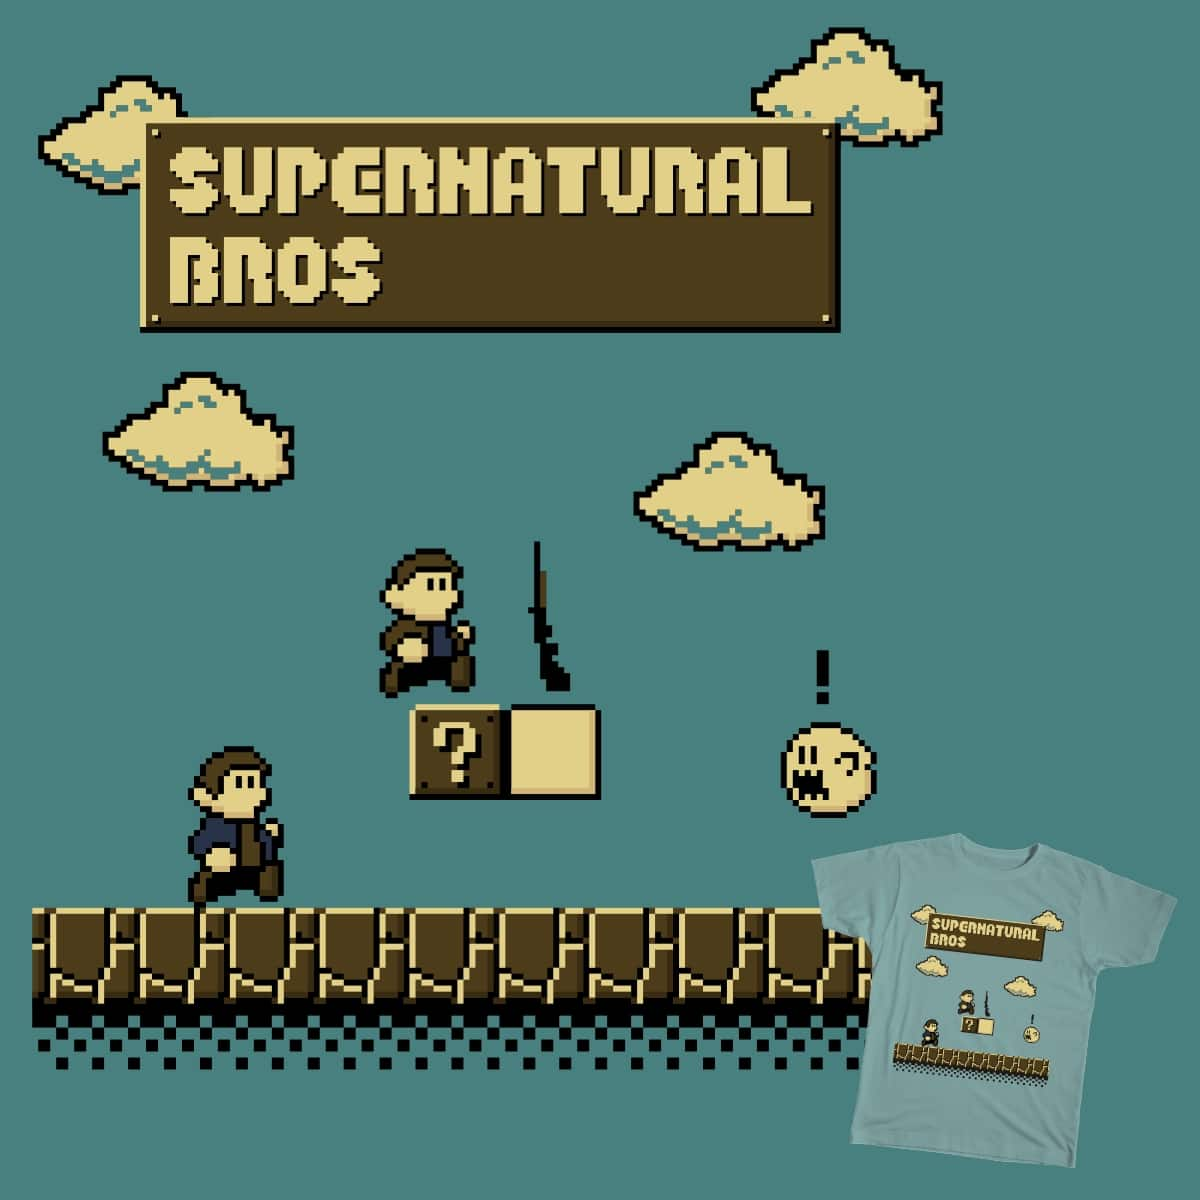 Supernatural Bros. by lee_byway on Threadless